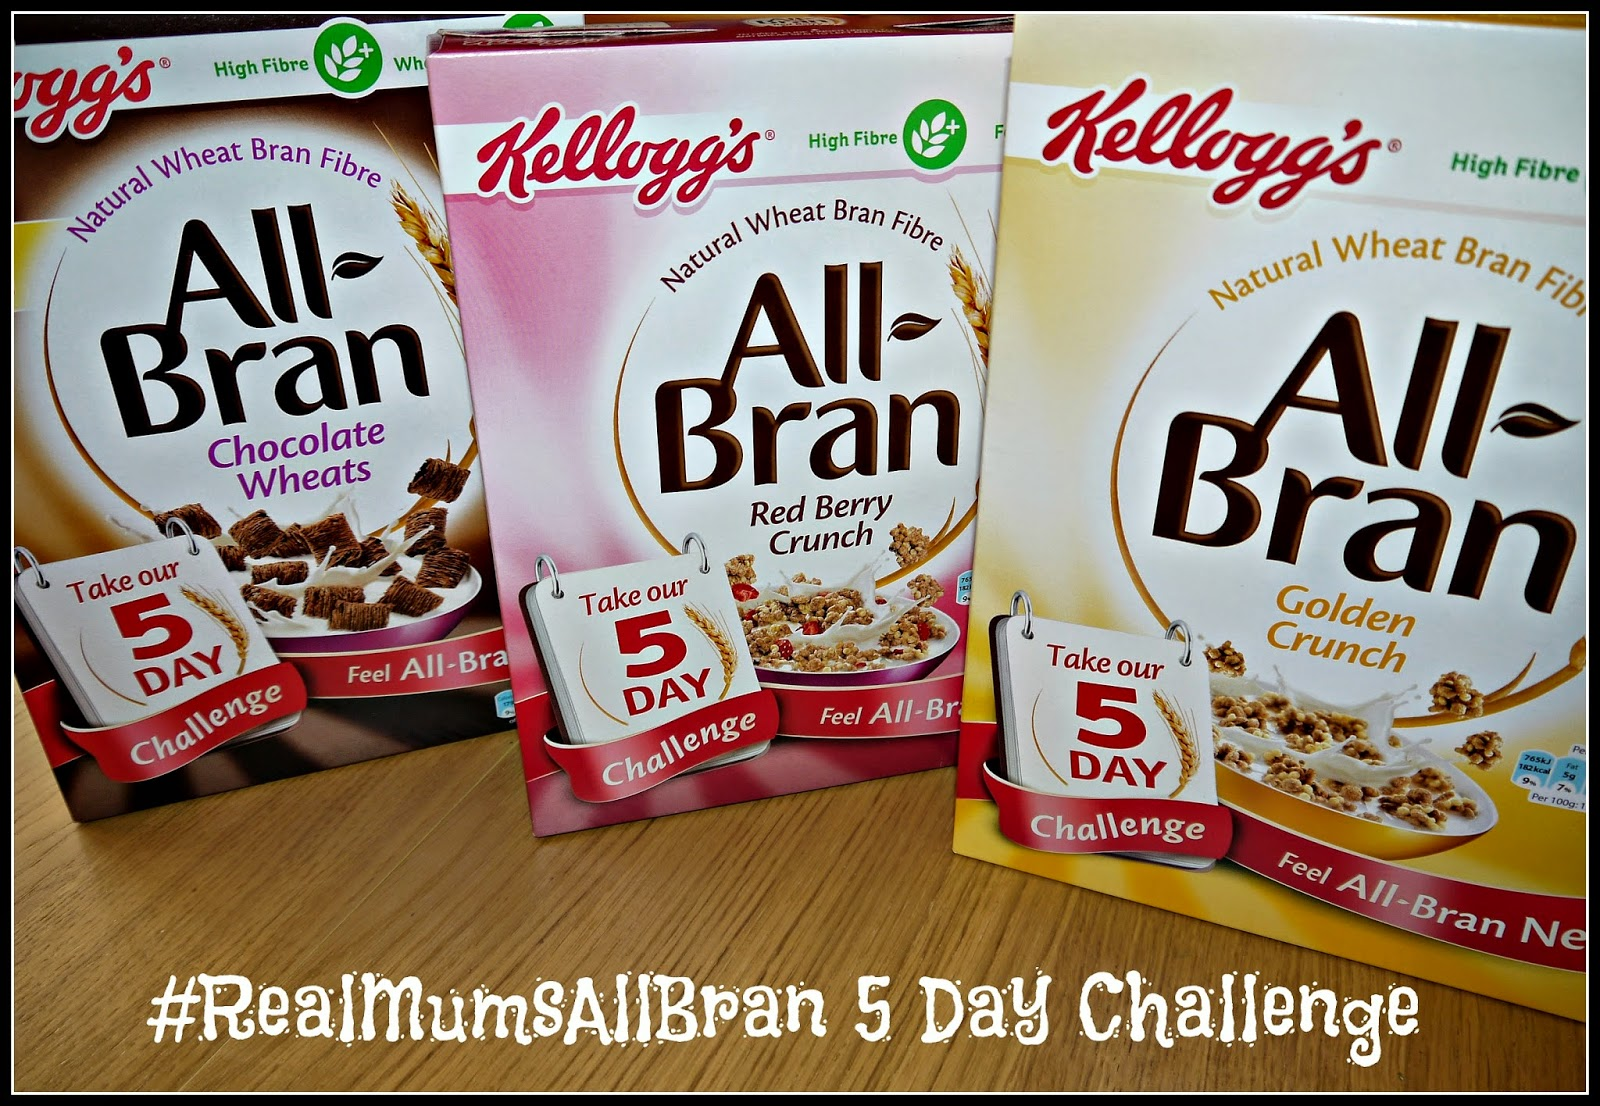 All-Bran, Kelloggs, cereals